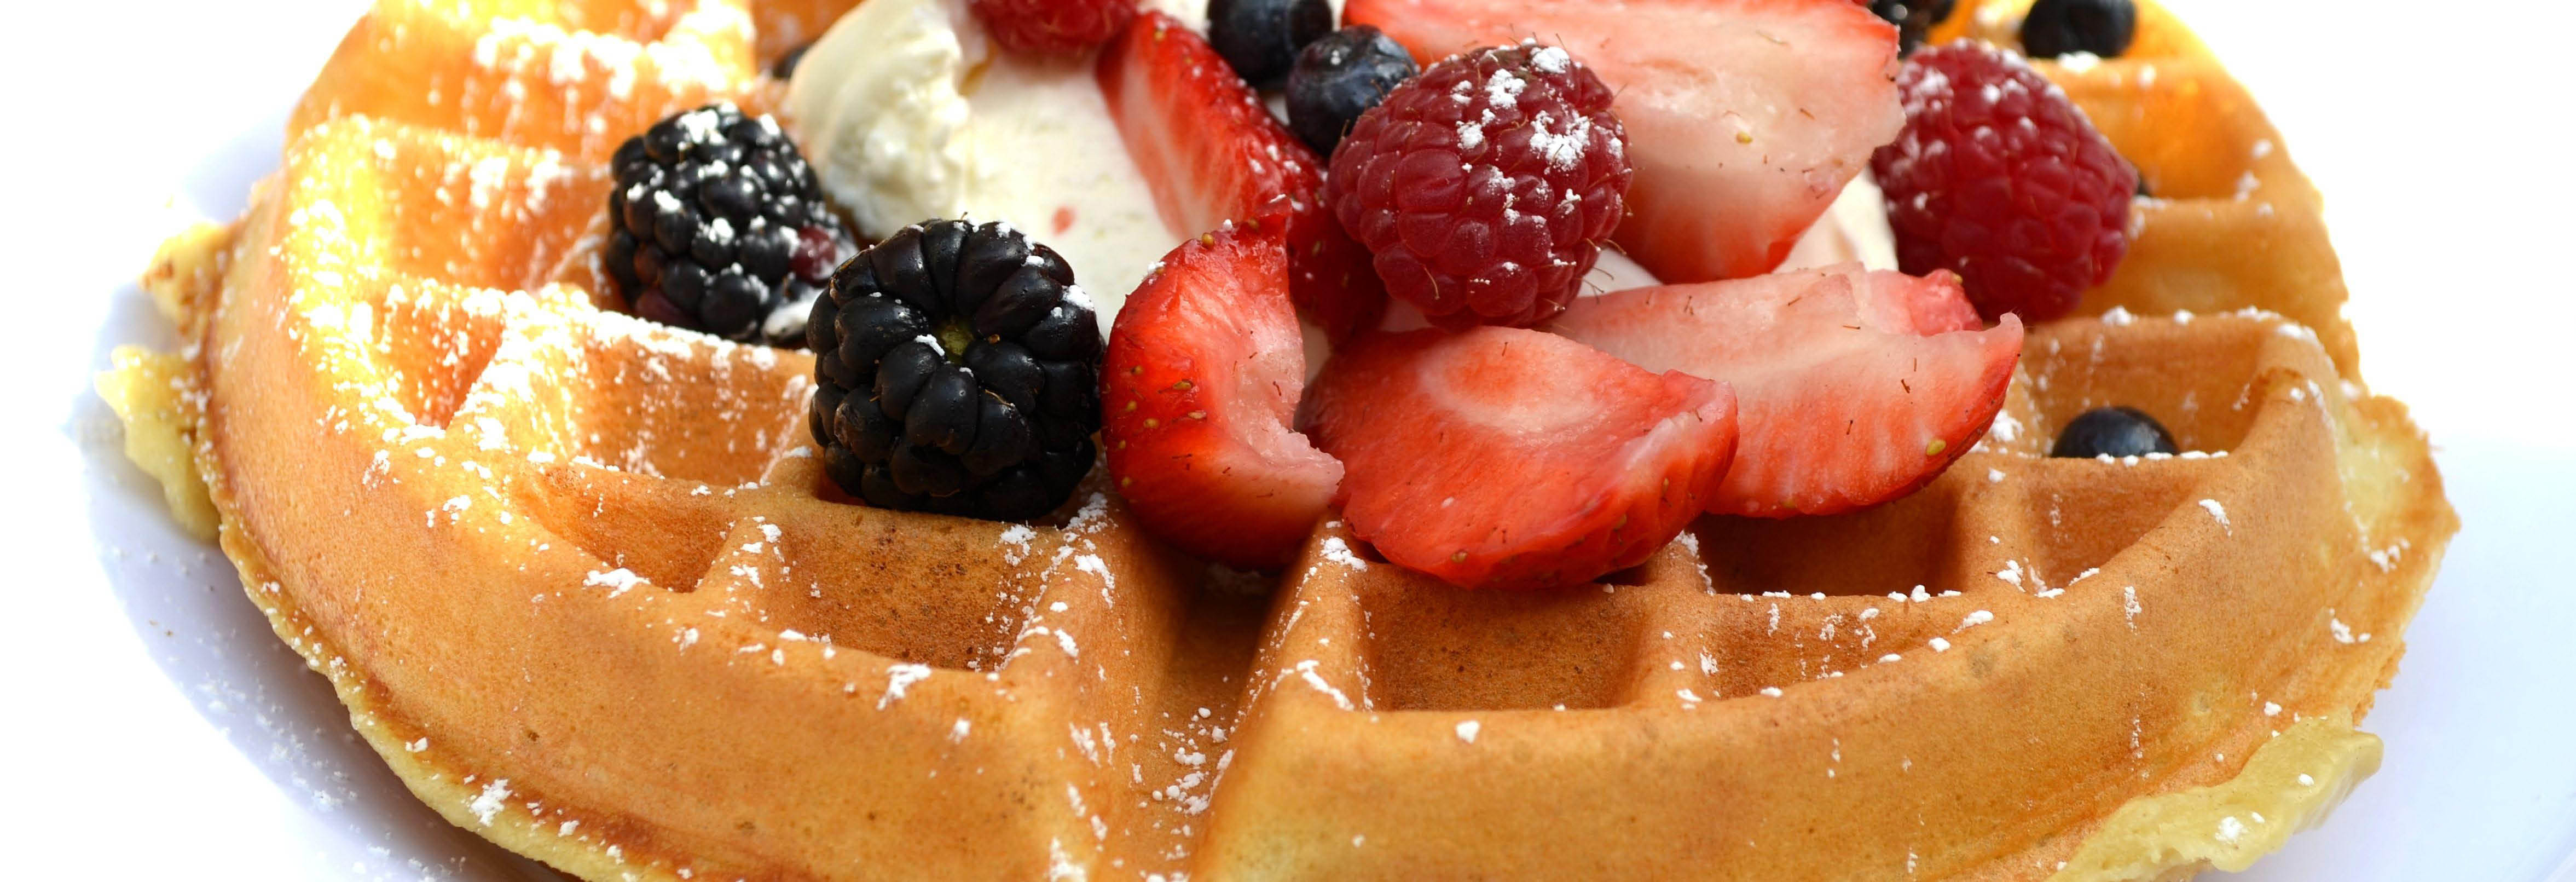 waffles, diner near me, diner food, breakfast, lunch, dinner, early bird special, valpak coupon